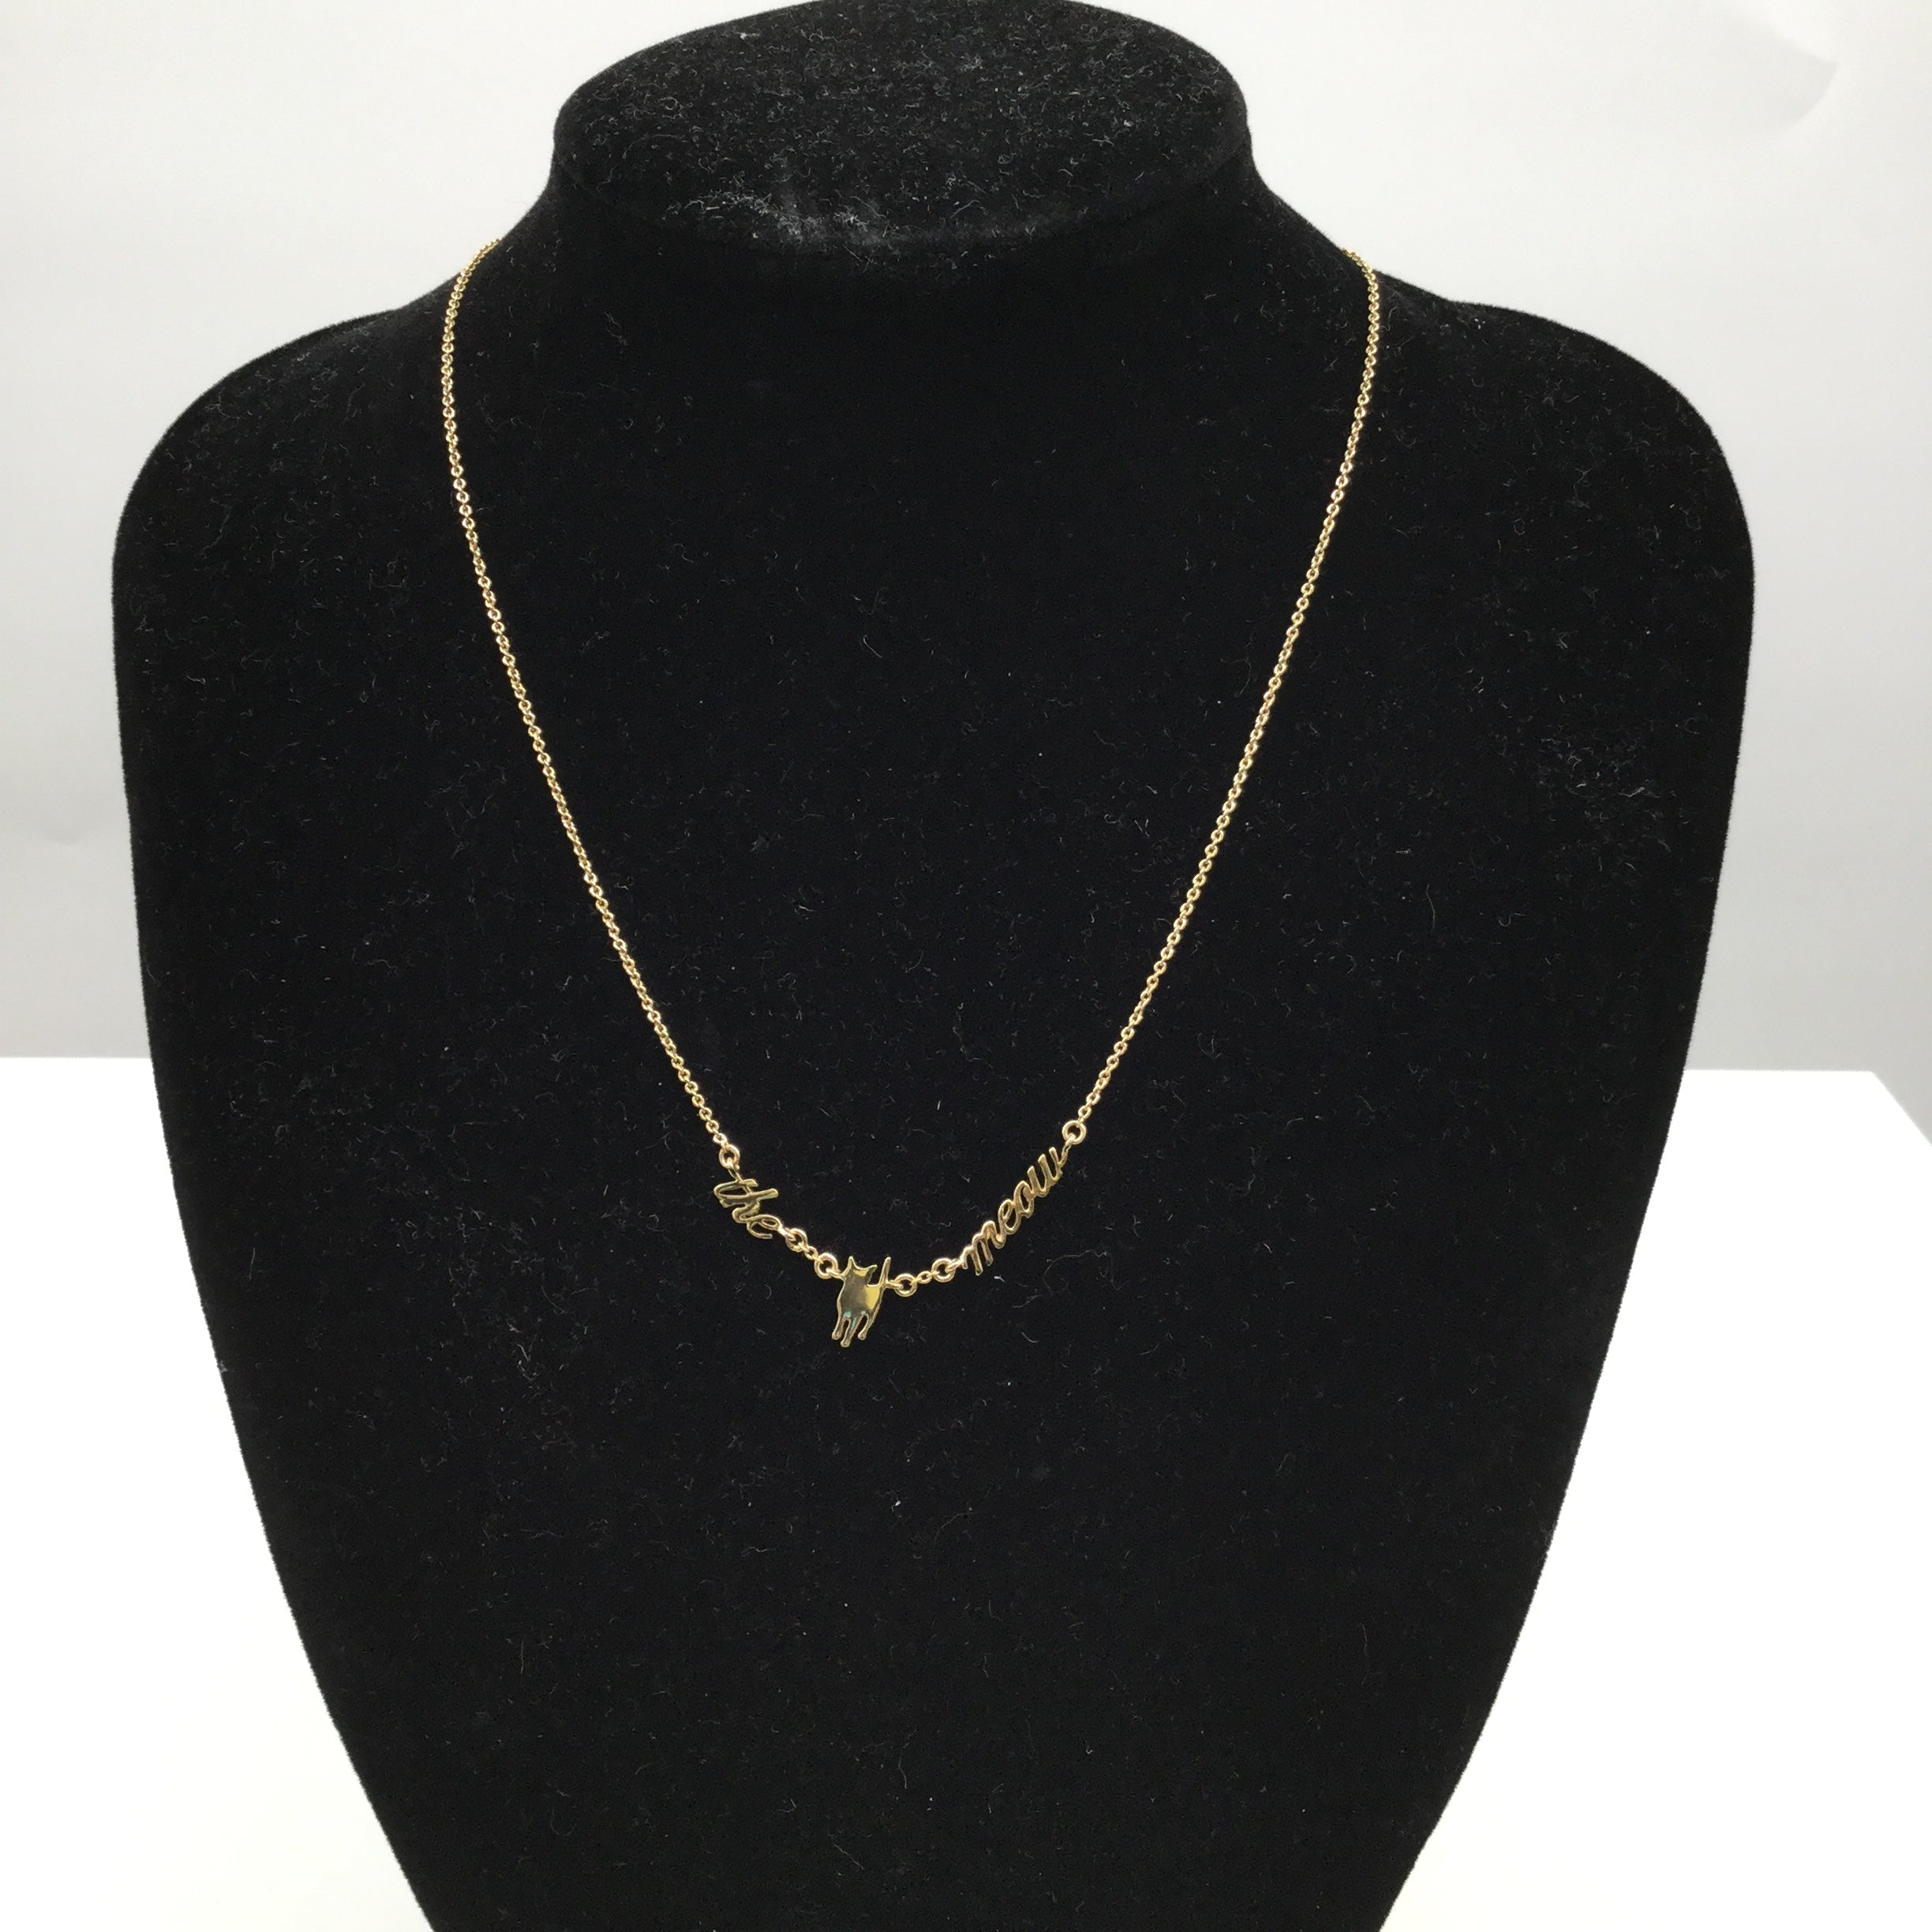 Kate Spade Gold Cat Necklace - GOLD KATE SPADE NECKLACE.